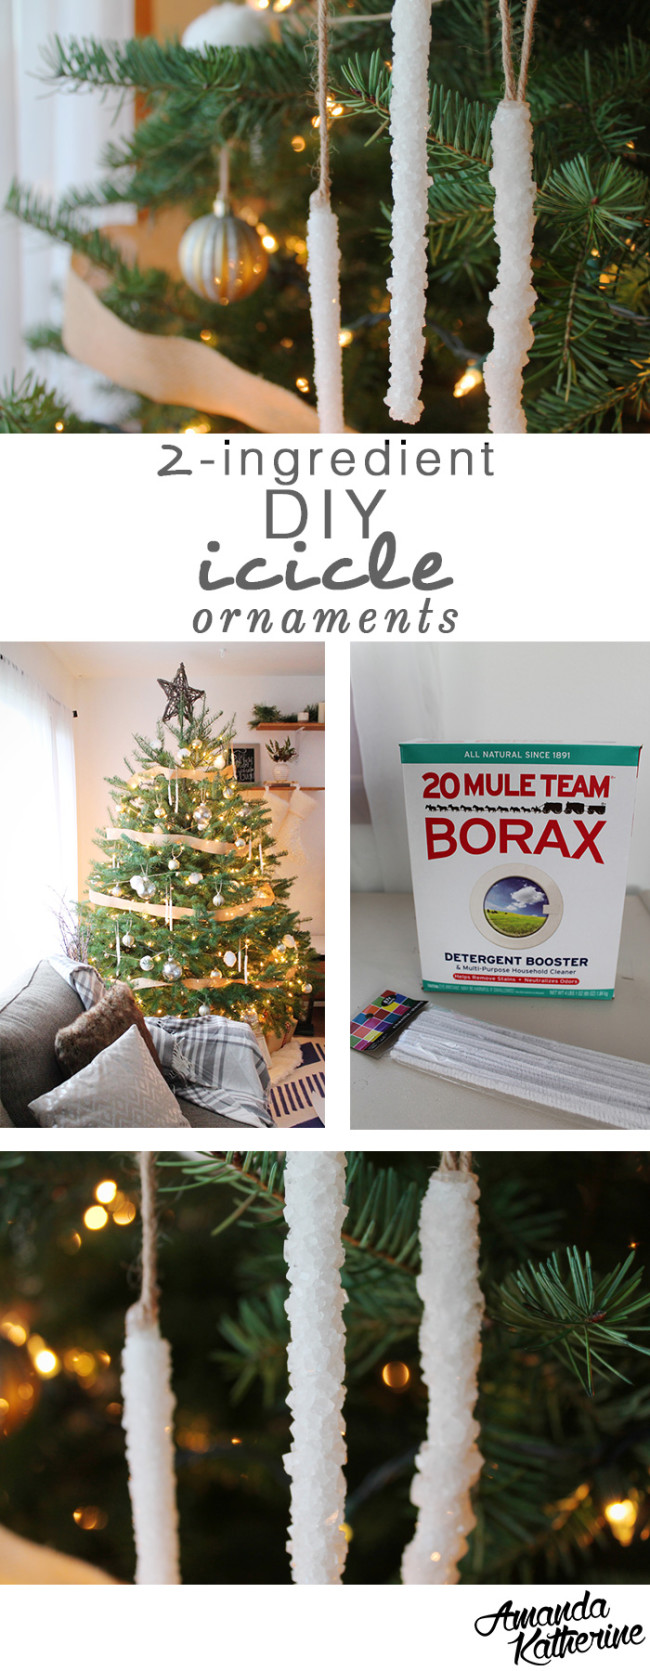 diy-icicle-ornaments-pin